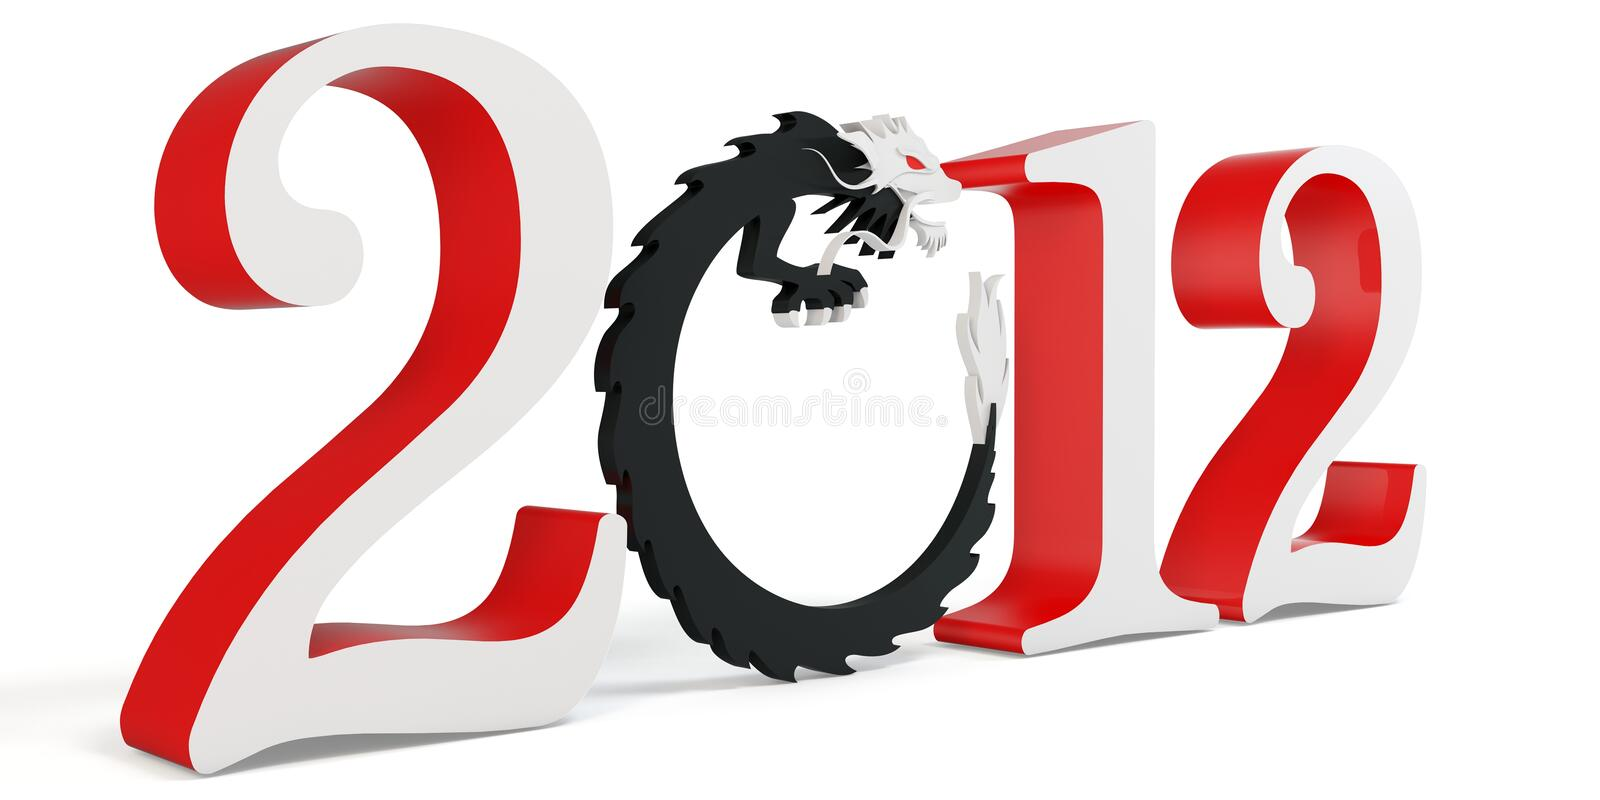 Download 3d Chinese New Year Of The Dragon 2012 Stock Illustration - Image: 21474400